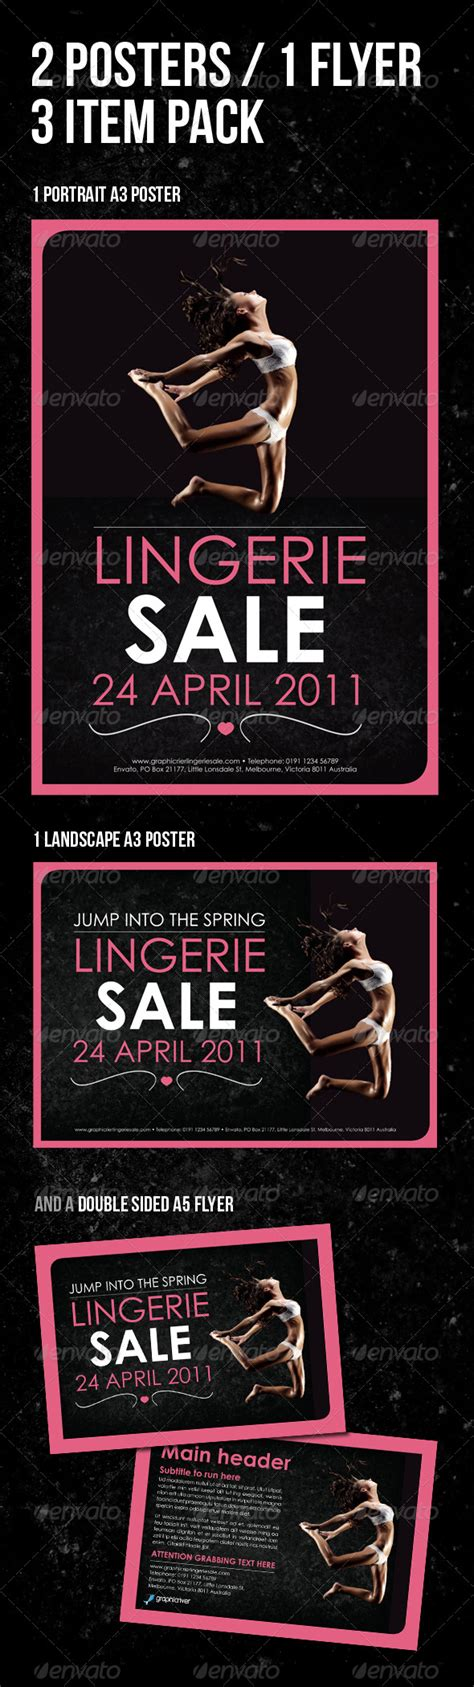 Poster A5 a3 poster a5 flyer pack 3 items by artyinc graphicriver